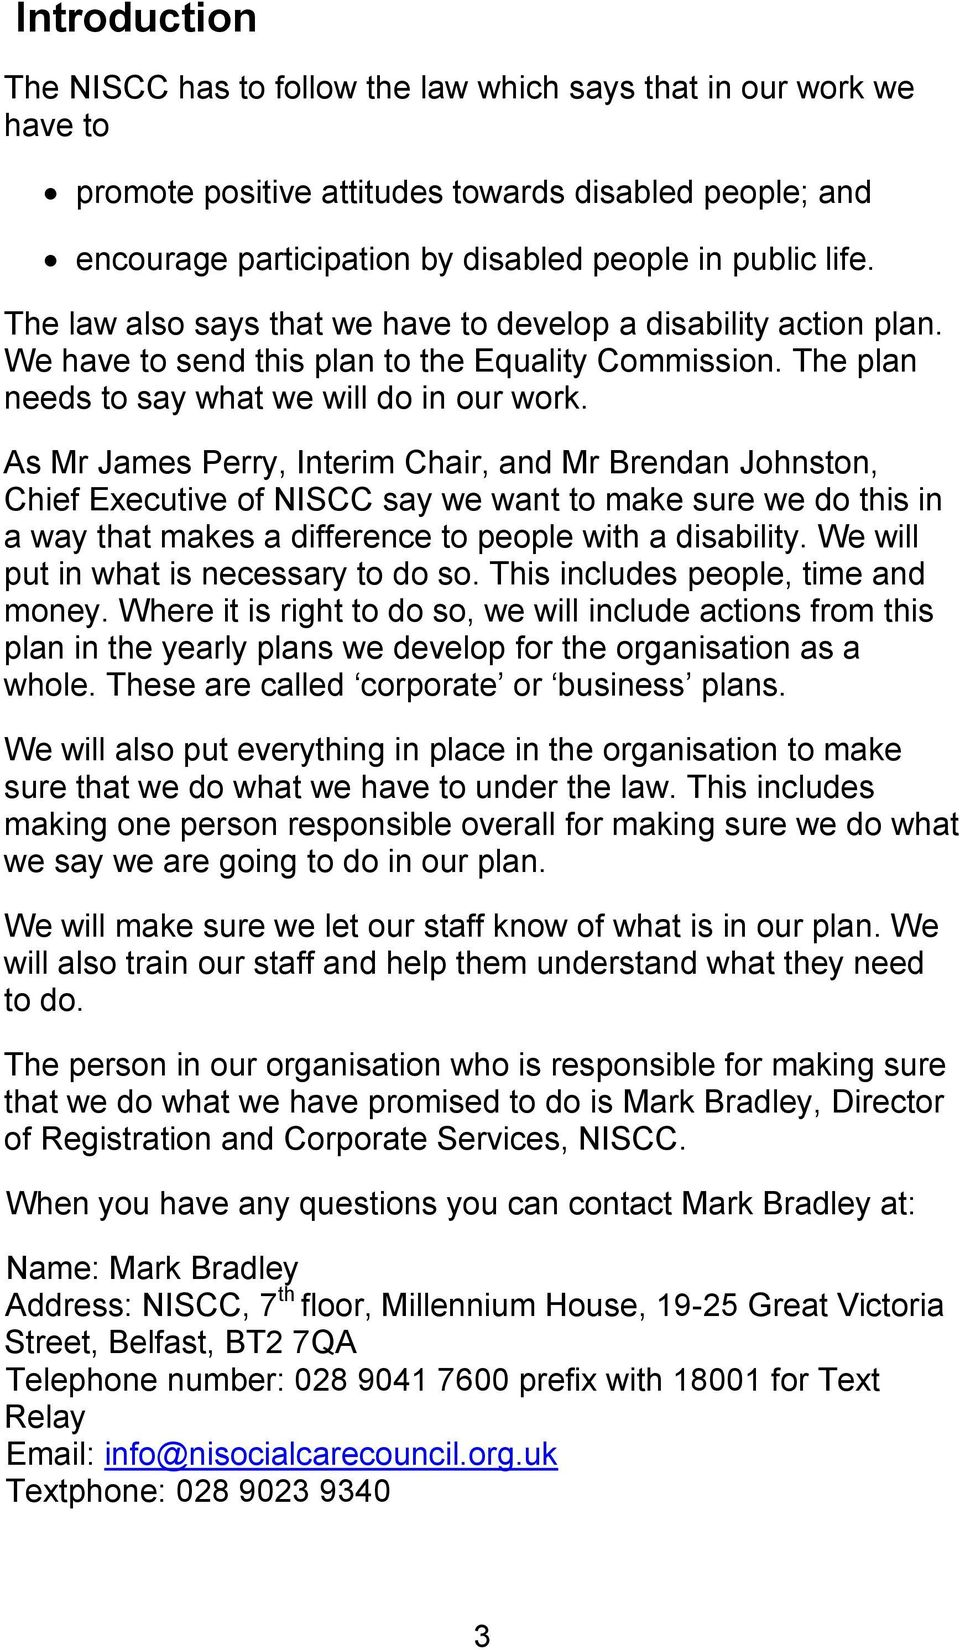 As Mr James Perry, Interim Chair, and Mr Brendan Johnston, Chief Executive of NISCC say we want to make sure we do this in a way that makes a difference to people with a disability.